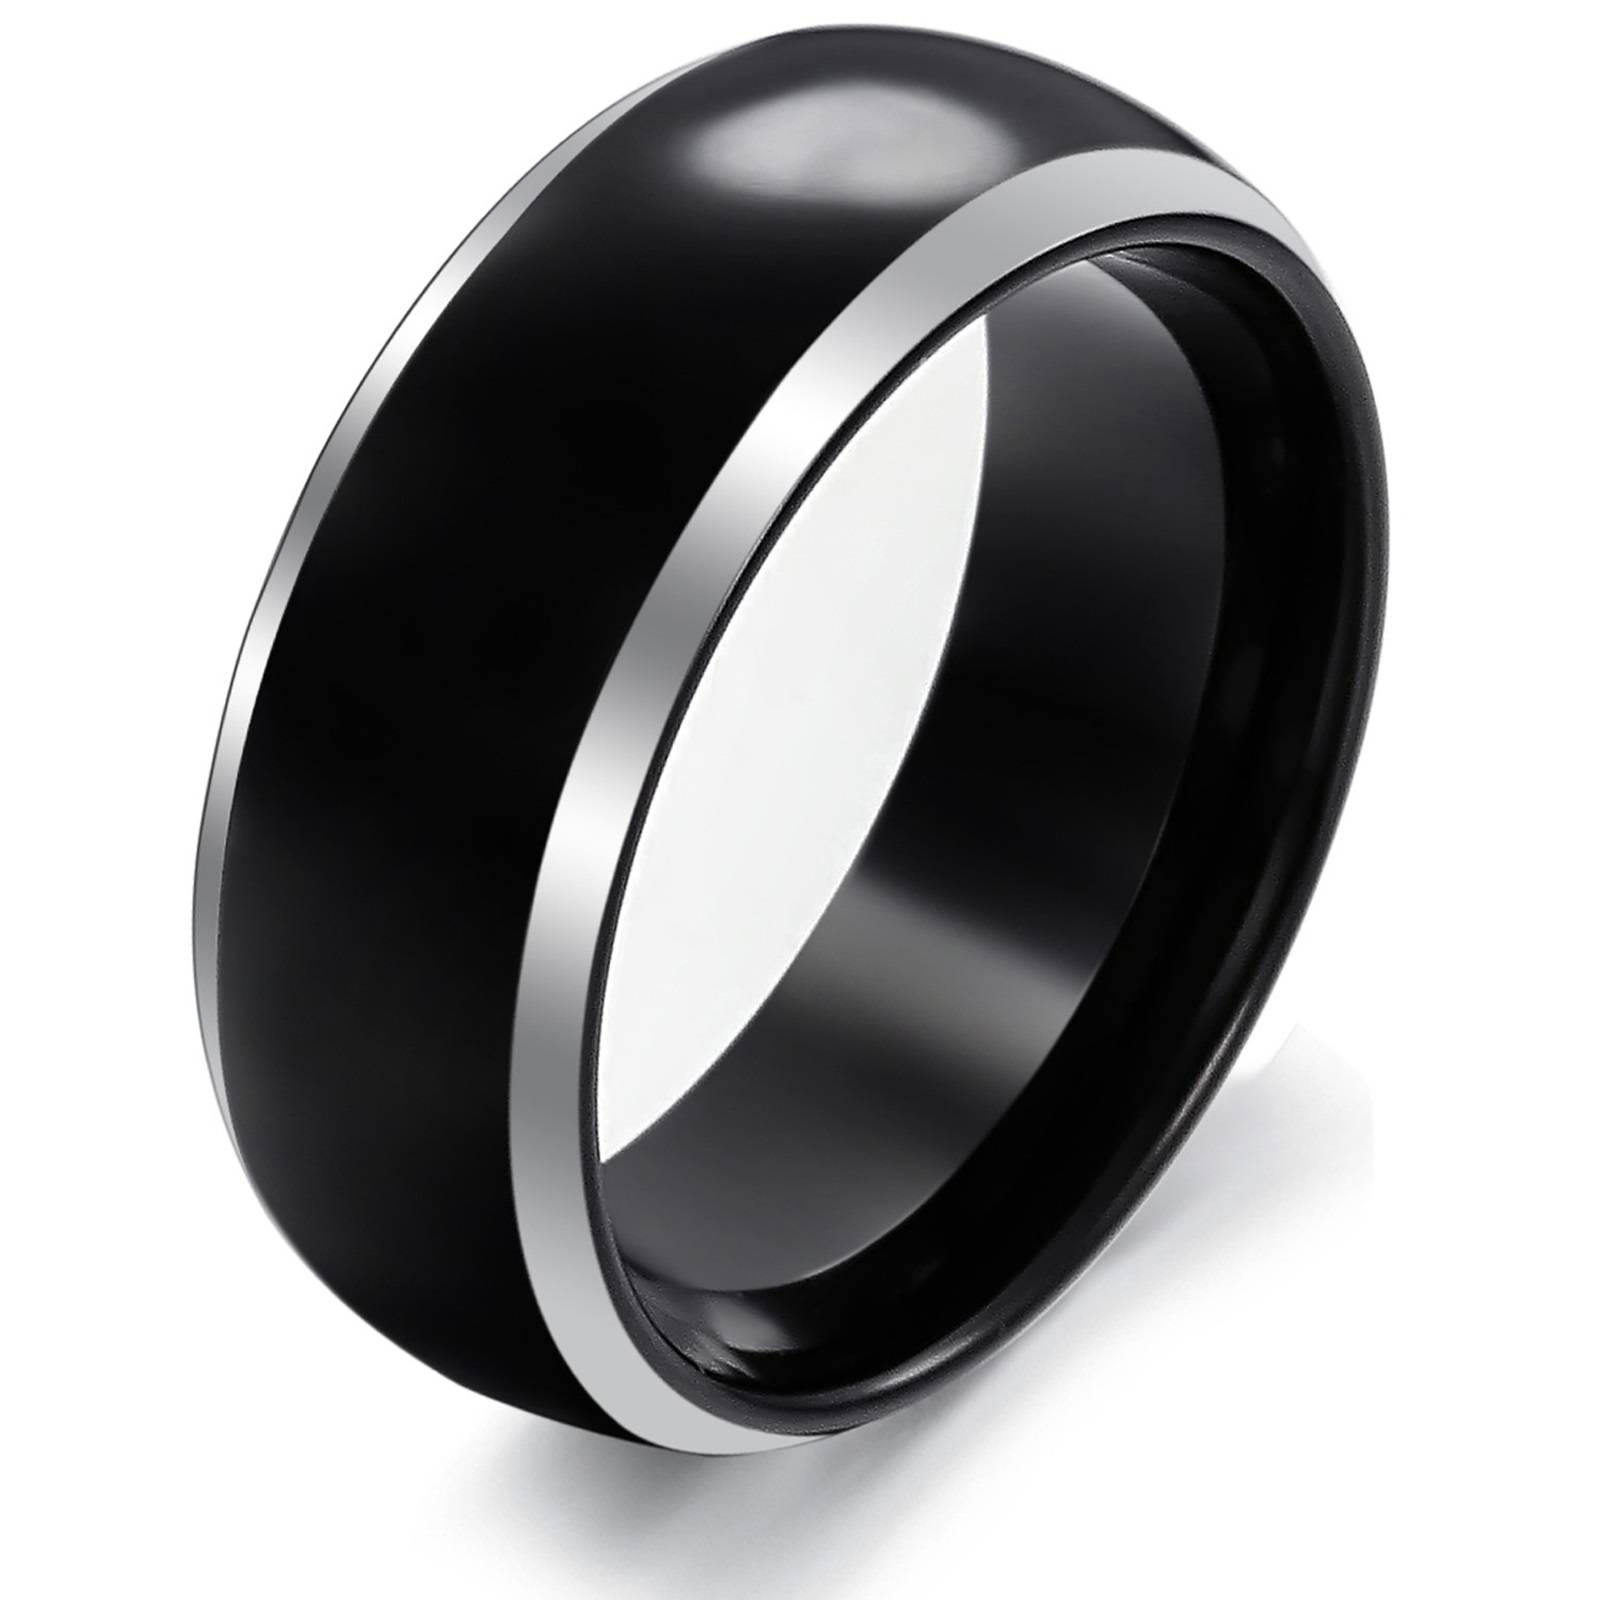 Some Designs Of Black Tungsten Wedding Bands | Wedding Ideas In Onyx Wedding Bands (View 14 of 15)